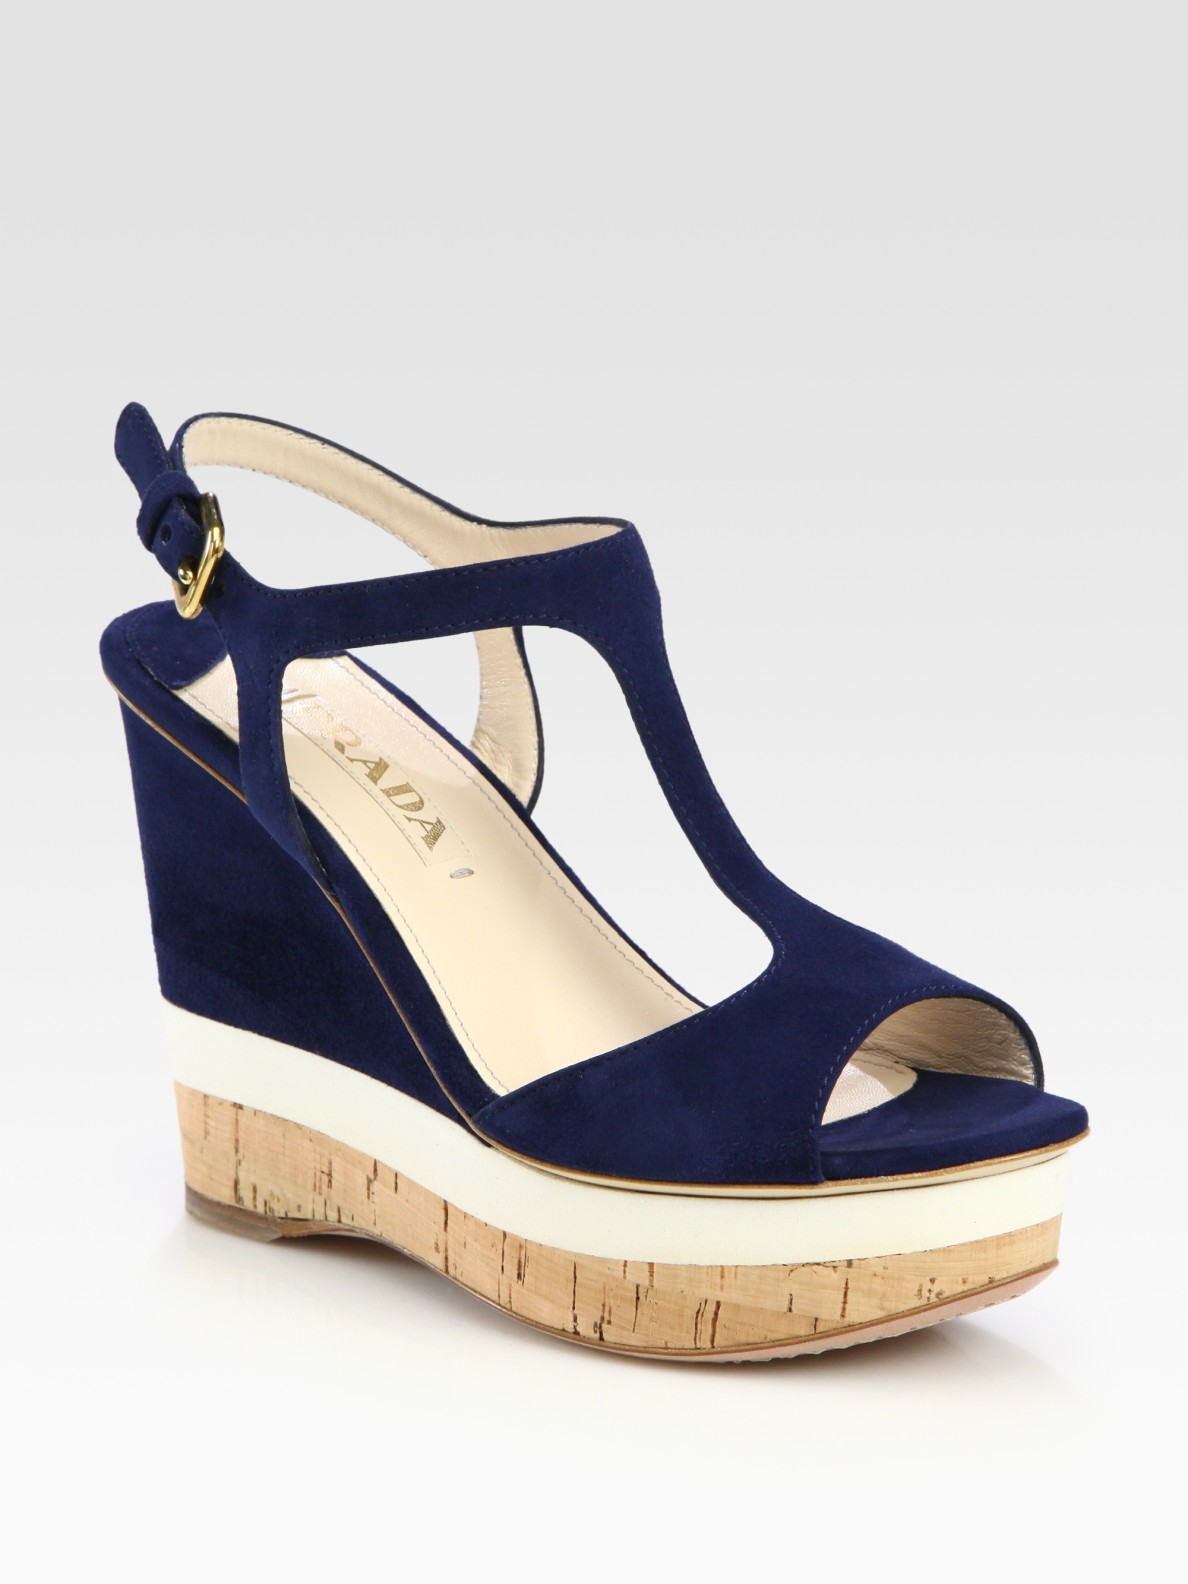 0ec561960820a Prada Suede T-Strap Wedge Sandals in Blue (navy)